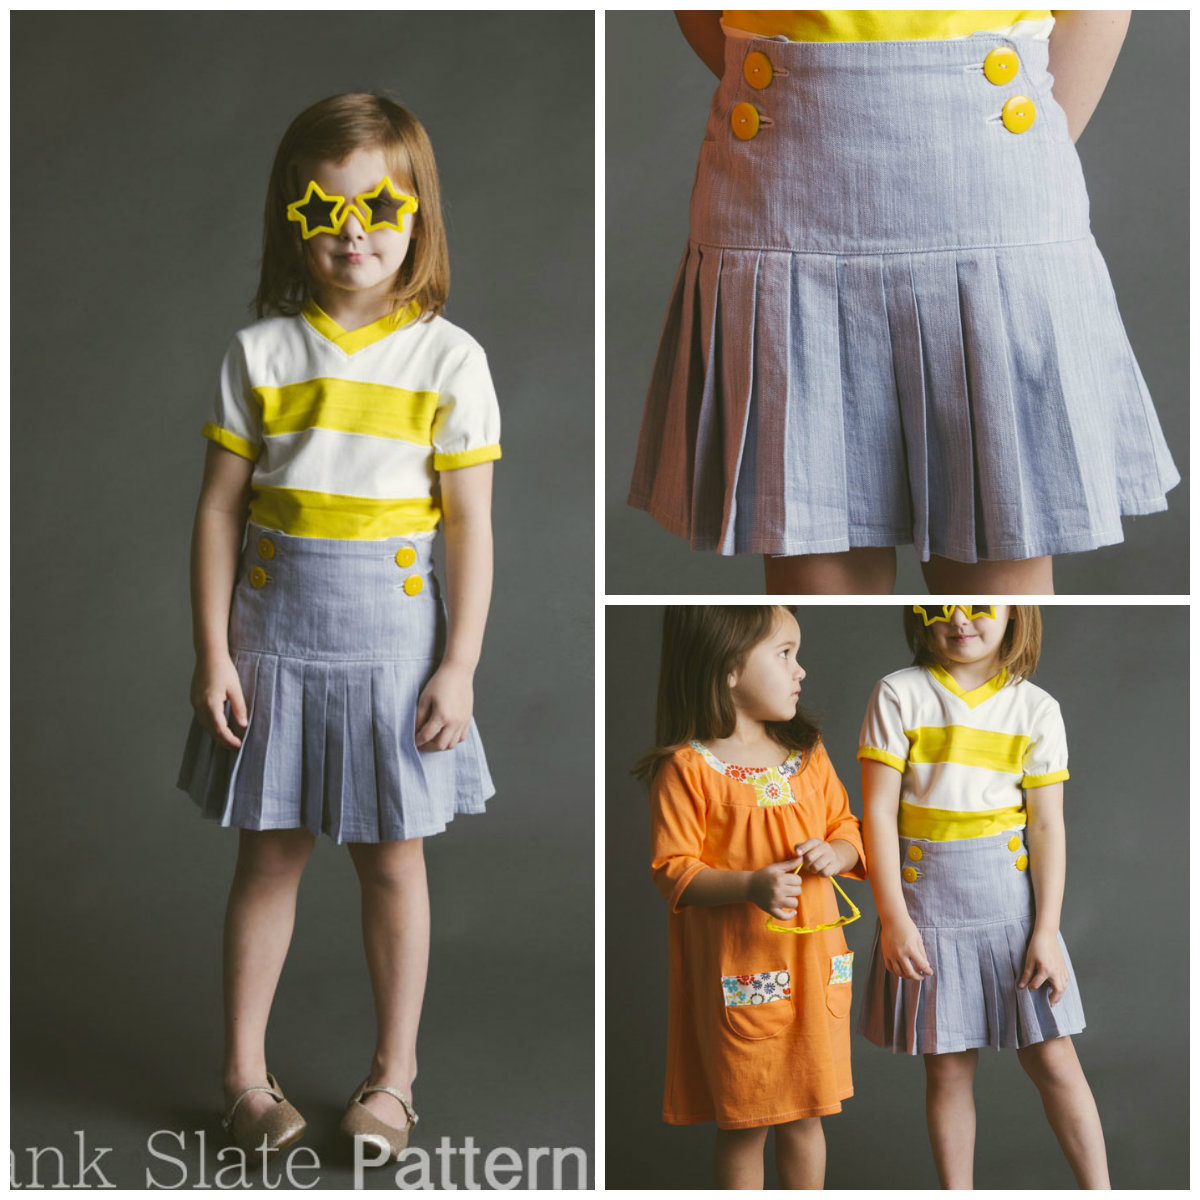 Blank Slate Child's skirt Downloadable Pattern Schoolday Skirt